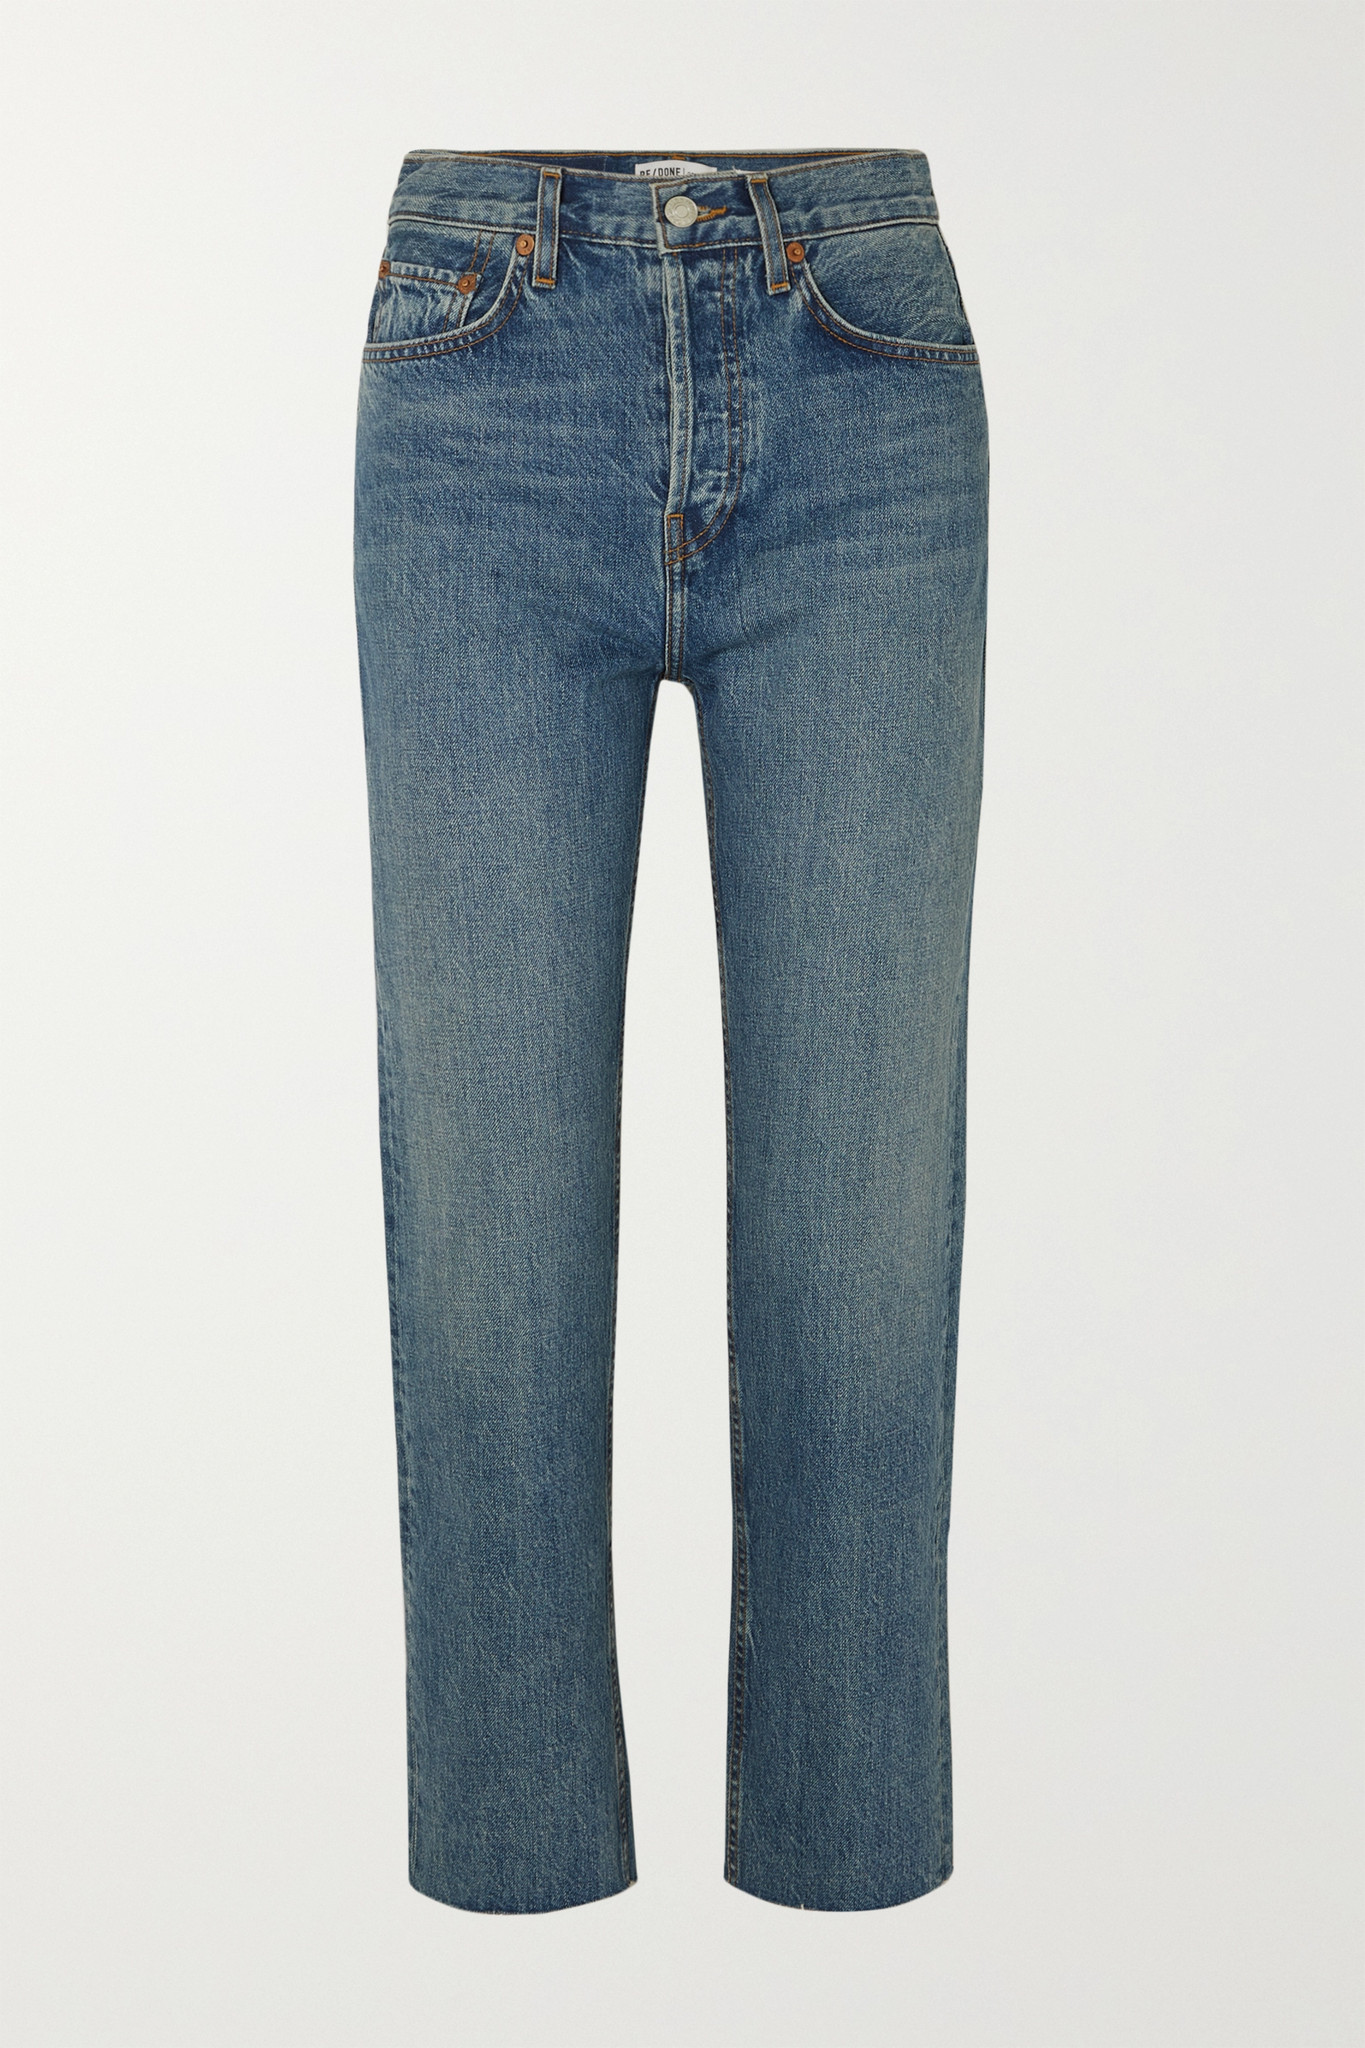 RE/DONE - Originals Stove Pipe High-rise Straight-leg Jeans - Blue - 30